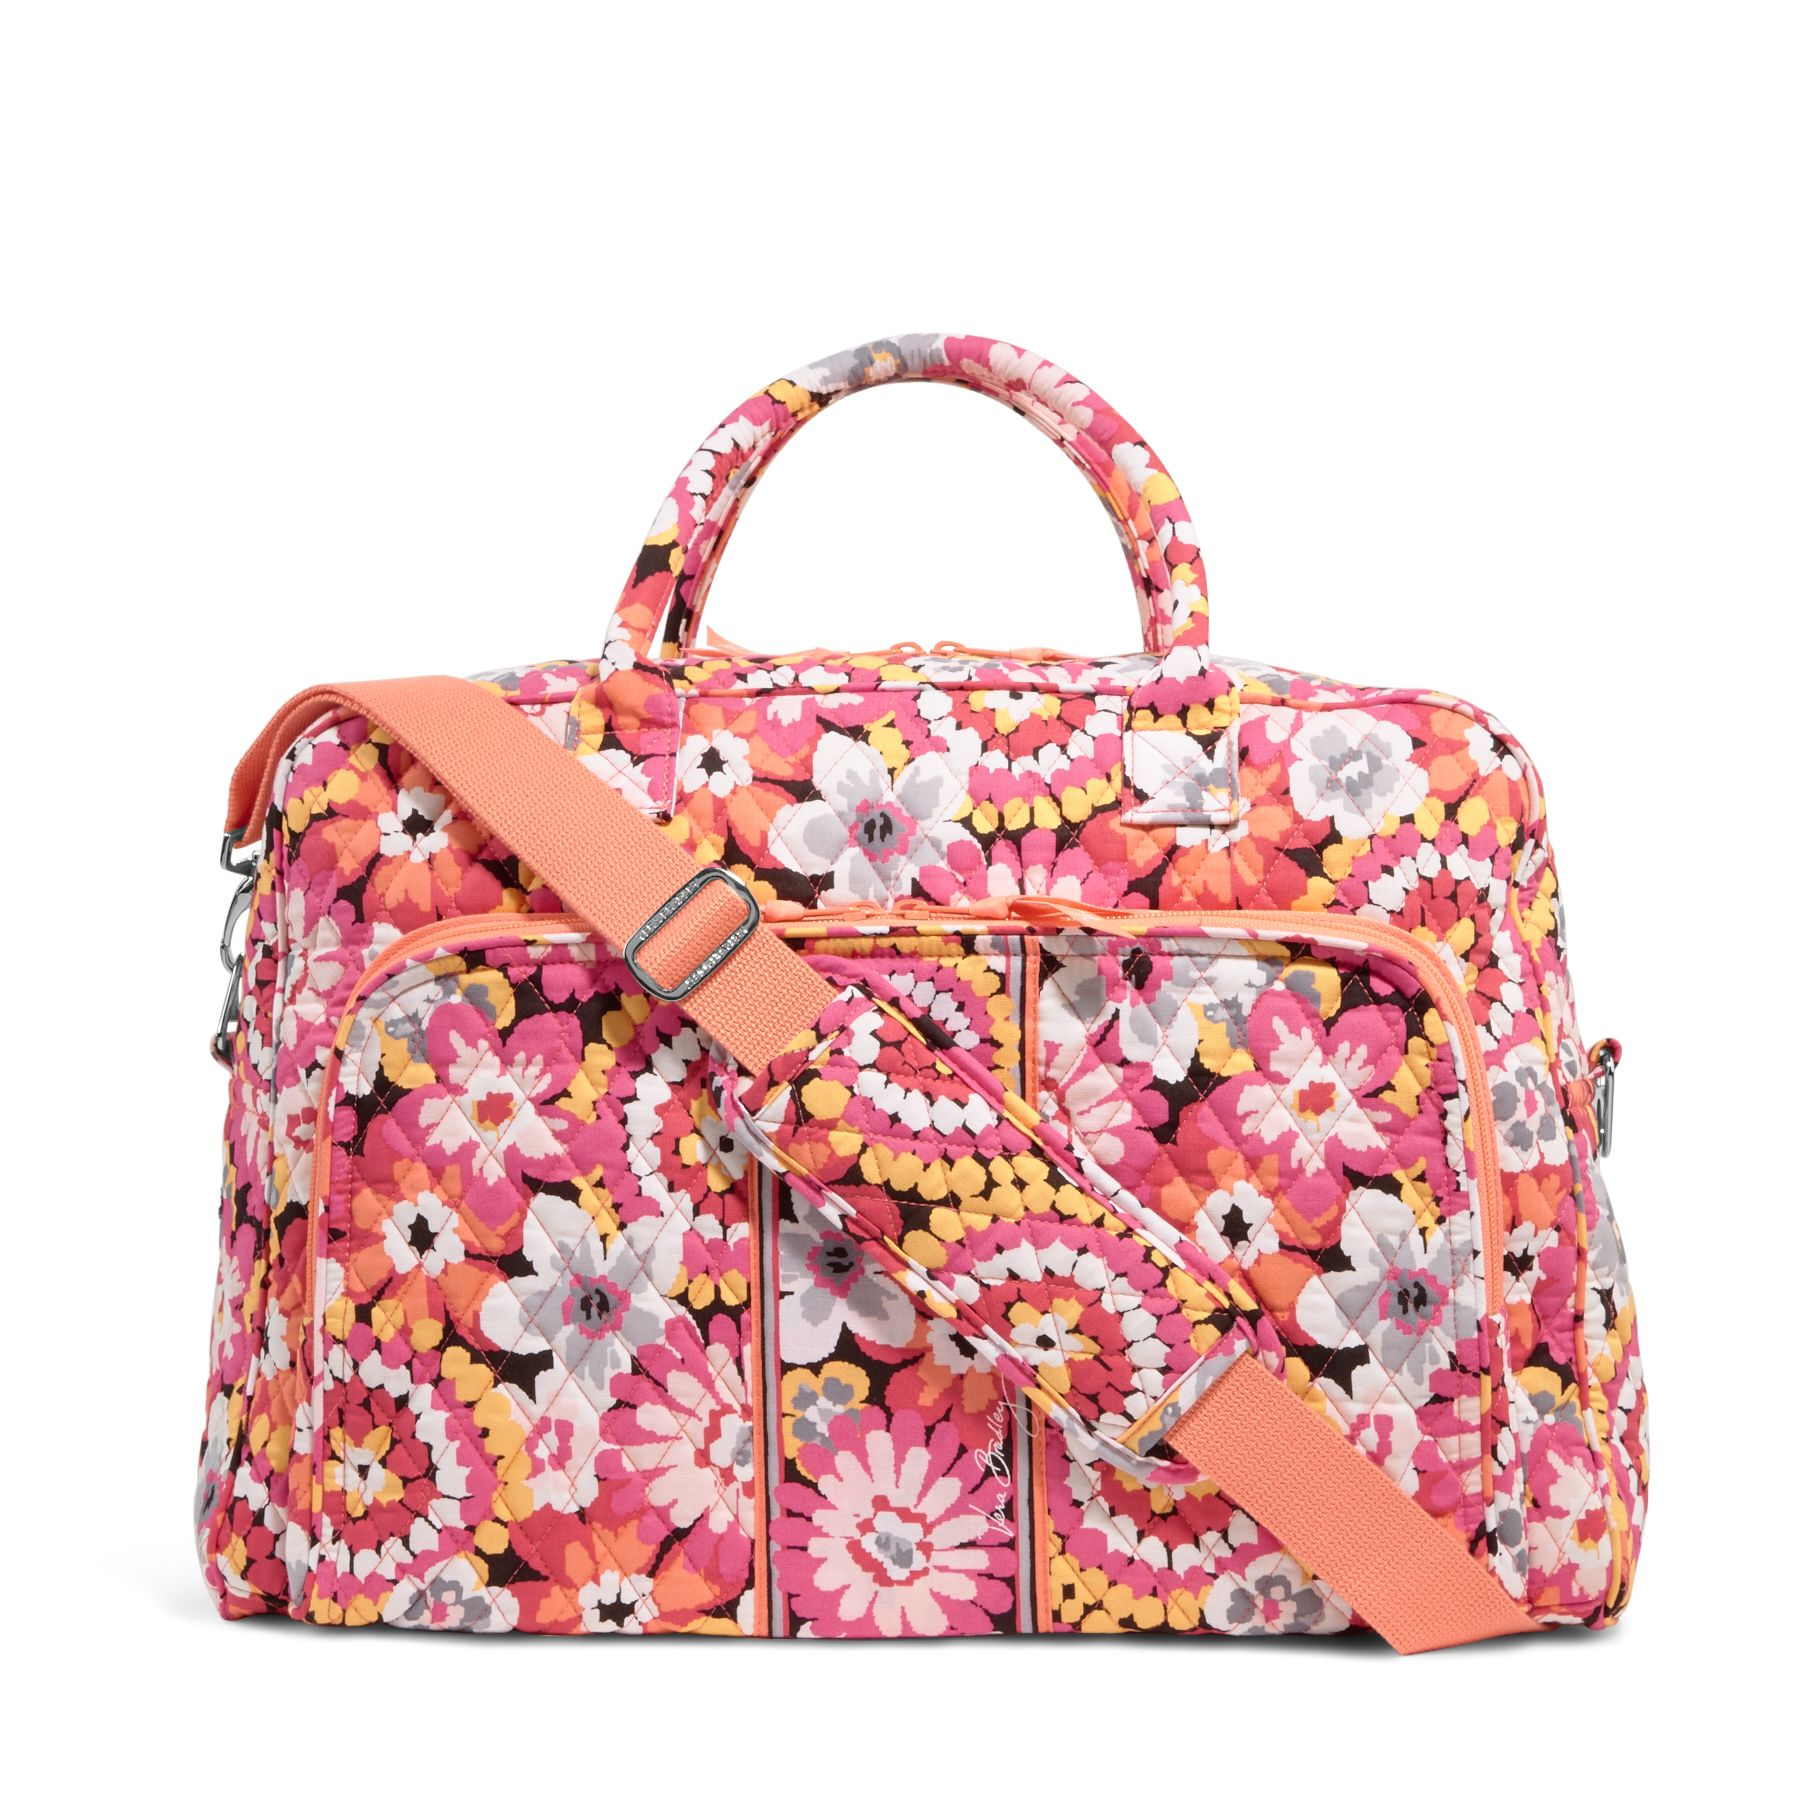 May 14,  · If you or someone you know is a Vera Bradley fan, check out the Online Outlet you can save 40% off your entire purchase.